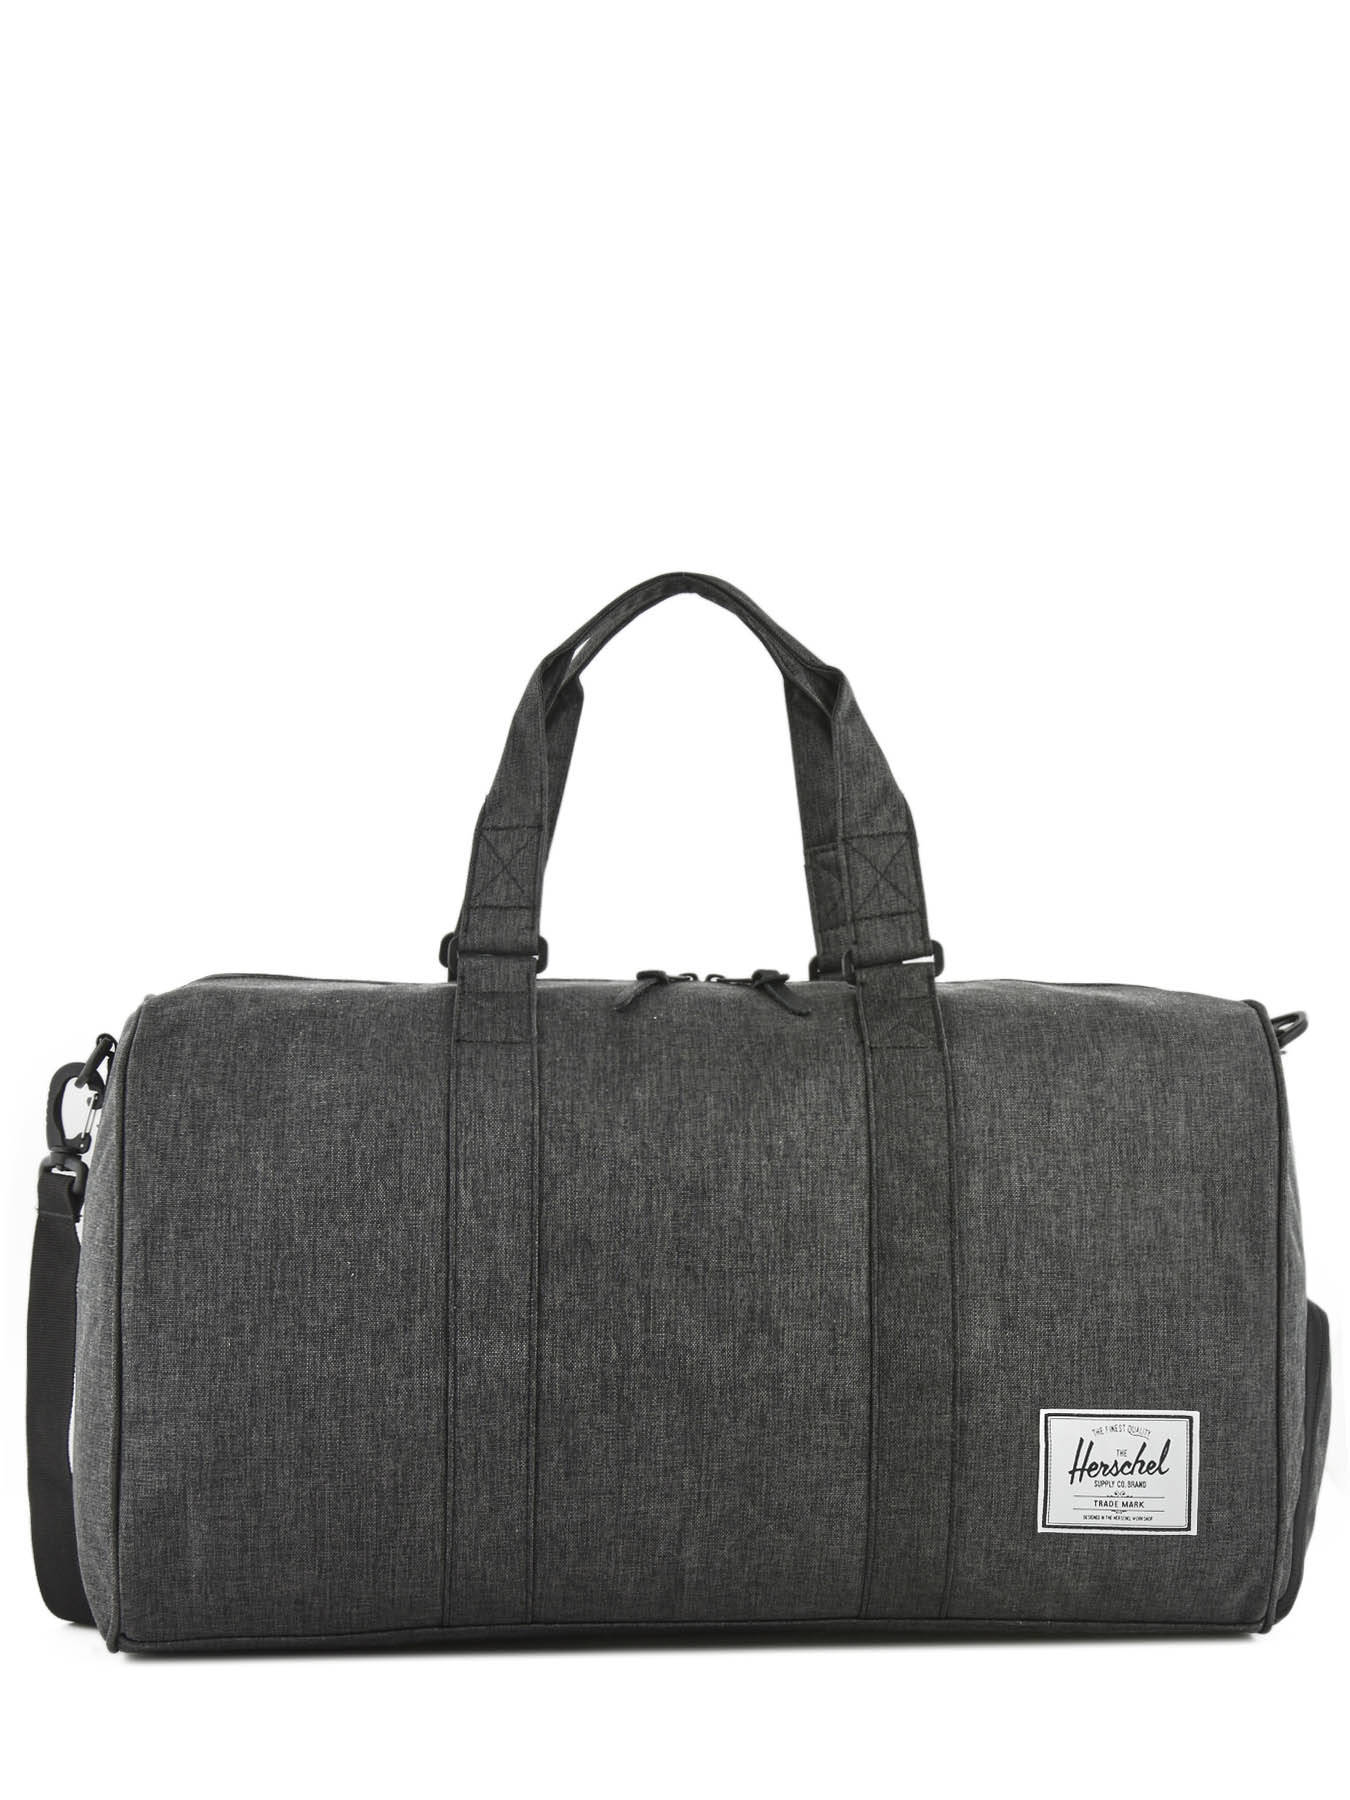 Supply Et Sur Herschel Voyage Sac Novel Edisac Sport be pCwx5Iqg